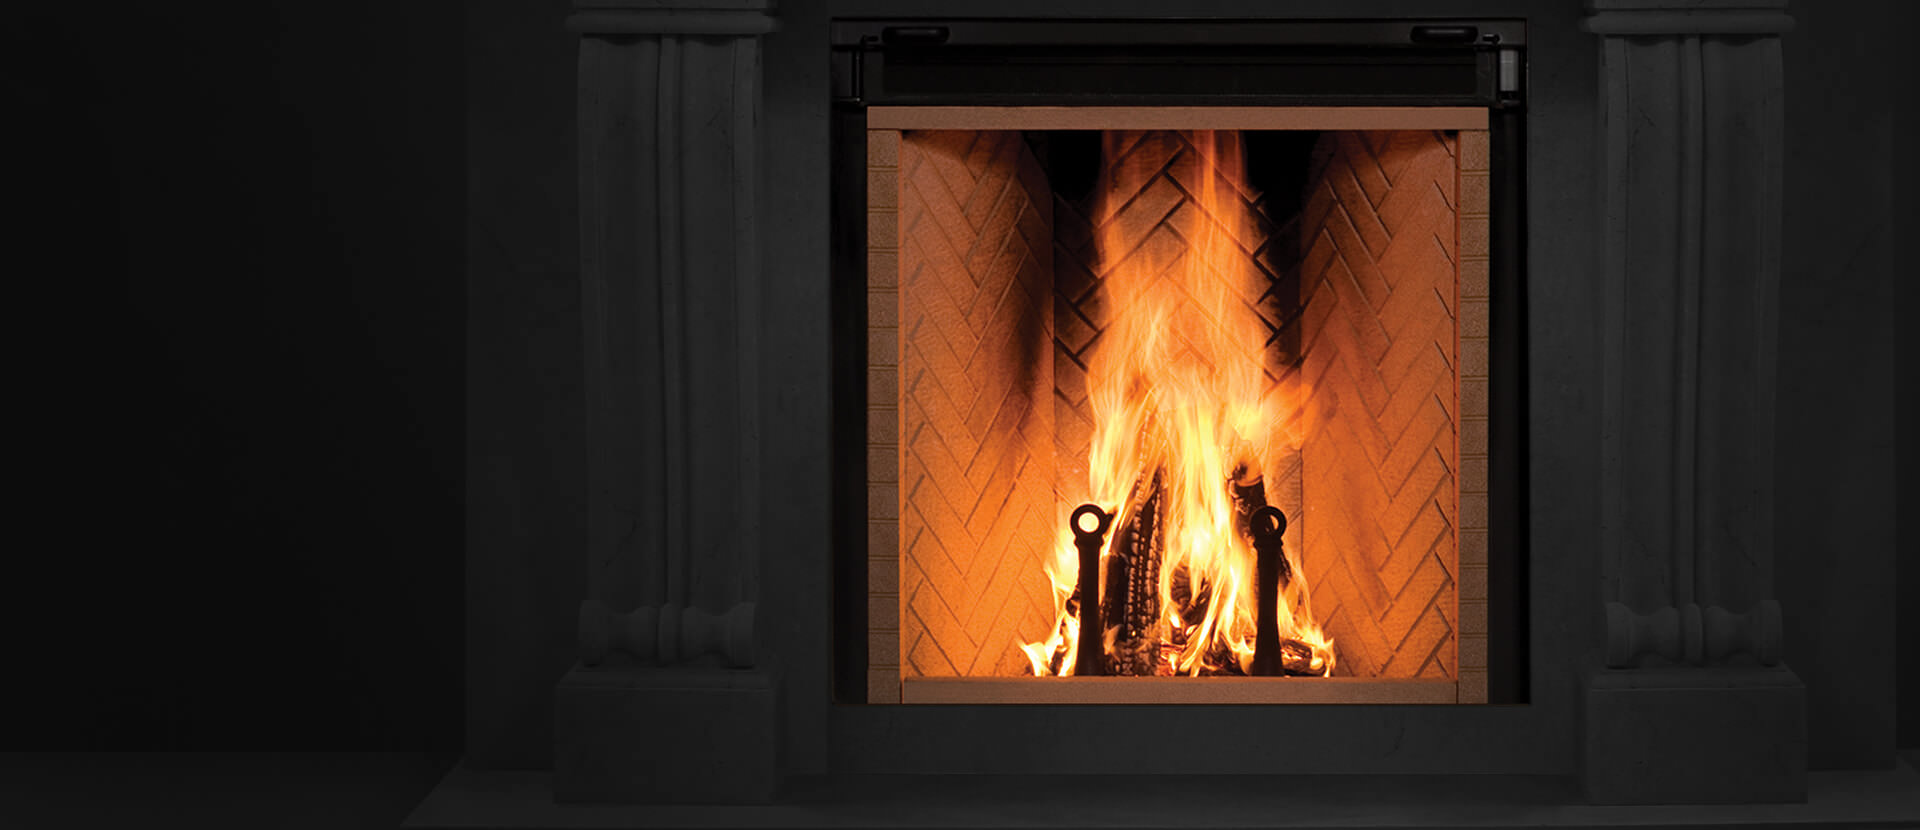 Renaissance fireplaces rumford 1500 wood burning for Renaissance rumford fireplace